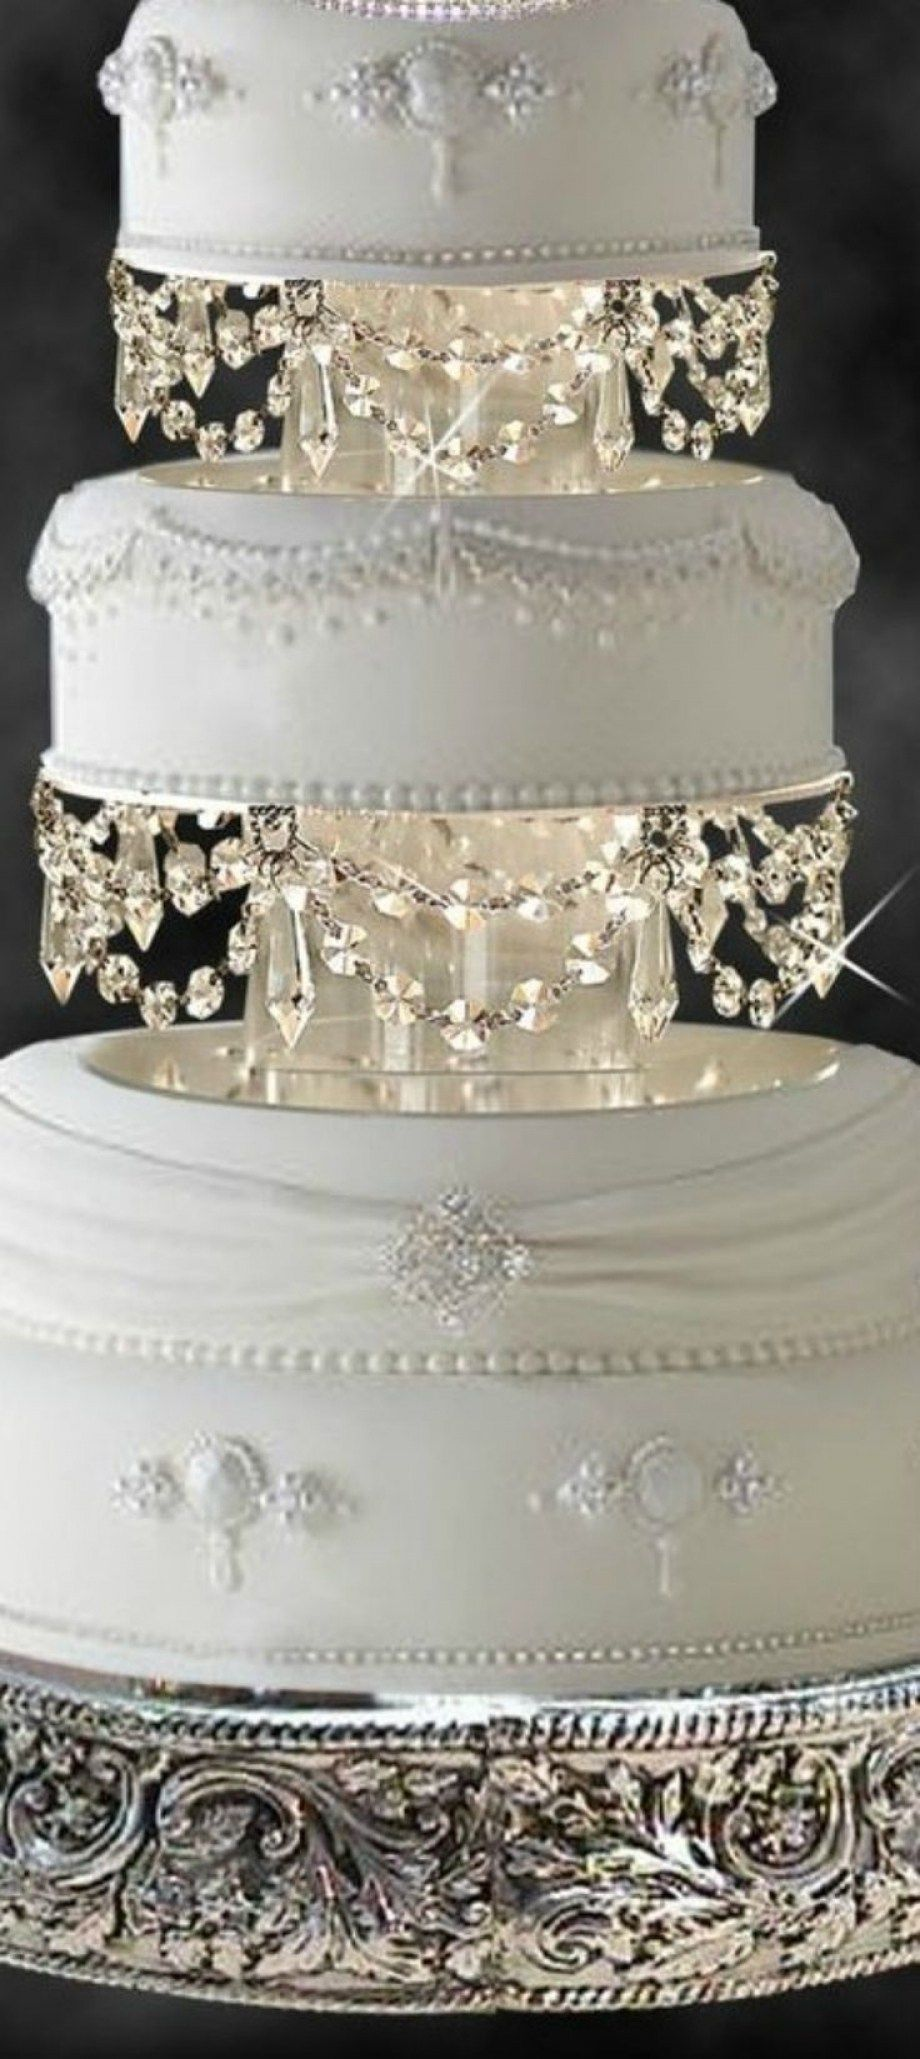 279 Best Wedding Cakes Bling Images On Pinterest Marriage Inside Wedding Cake With Crystal Decorations Best Inspiration Cool Wedding Cakes Wedding Cake Stands Wedding Cakes Vintage